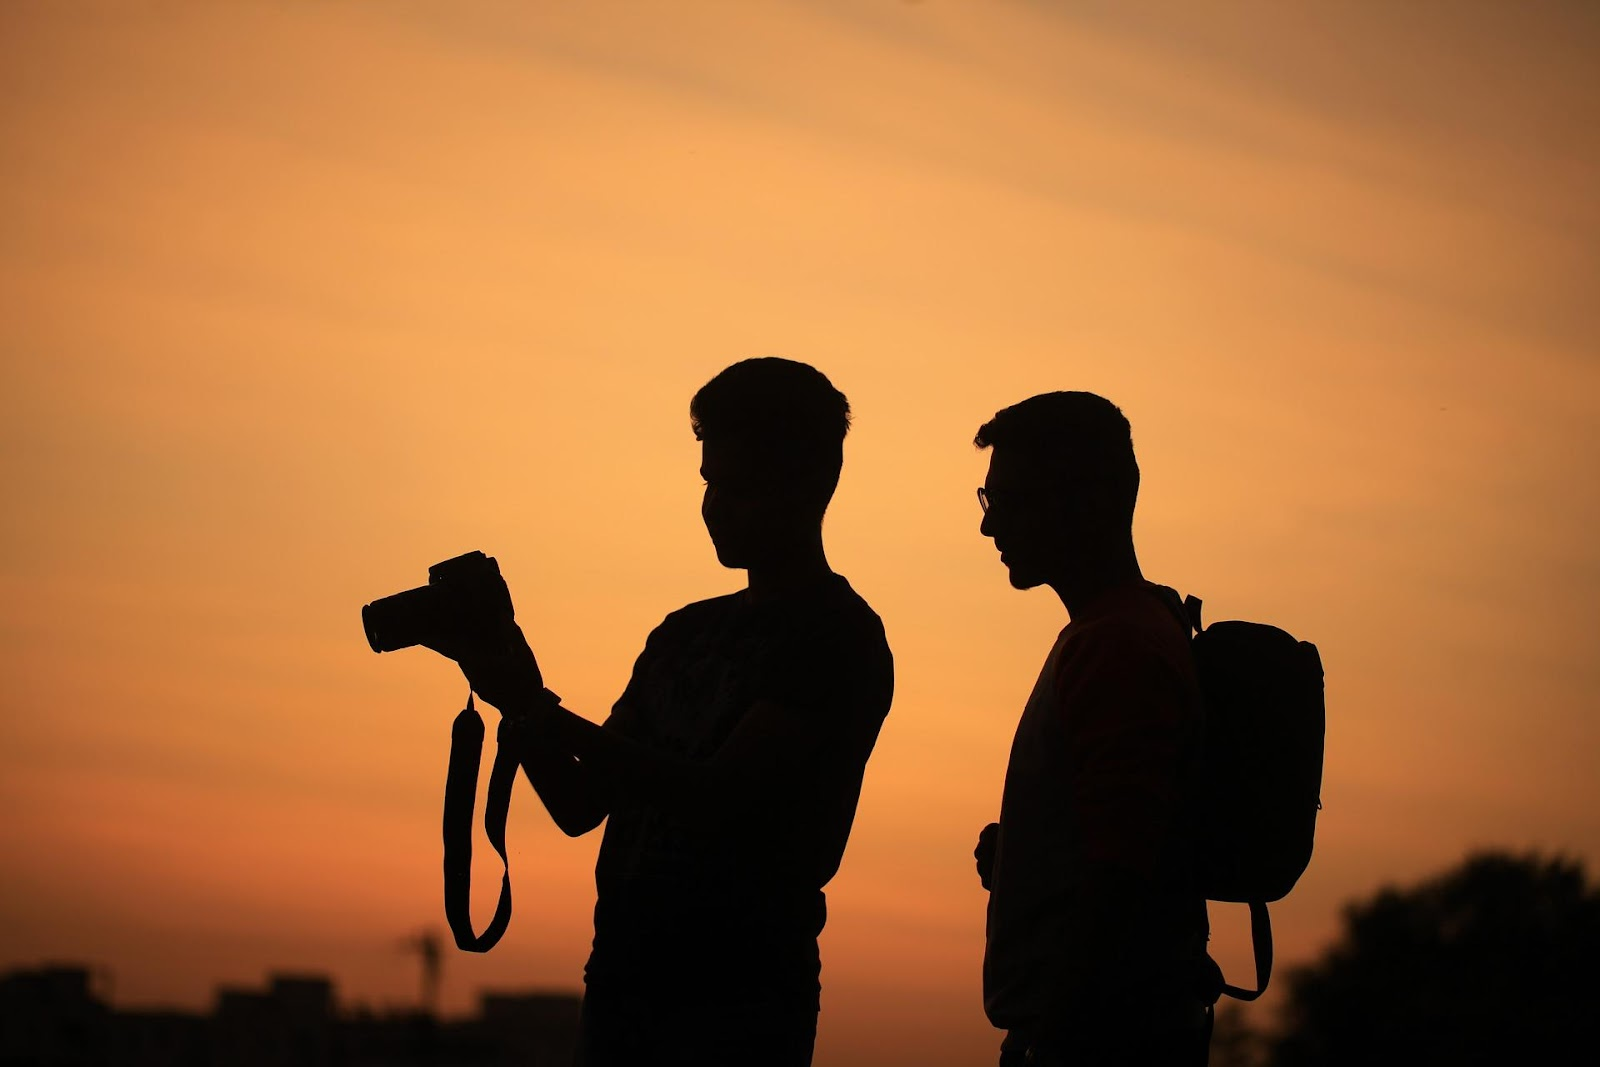 silhouette of two men